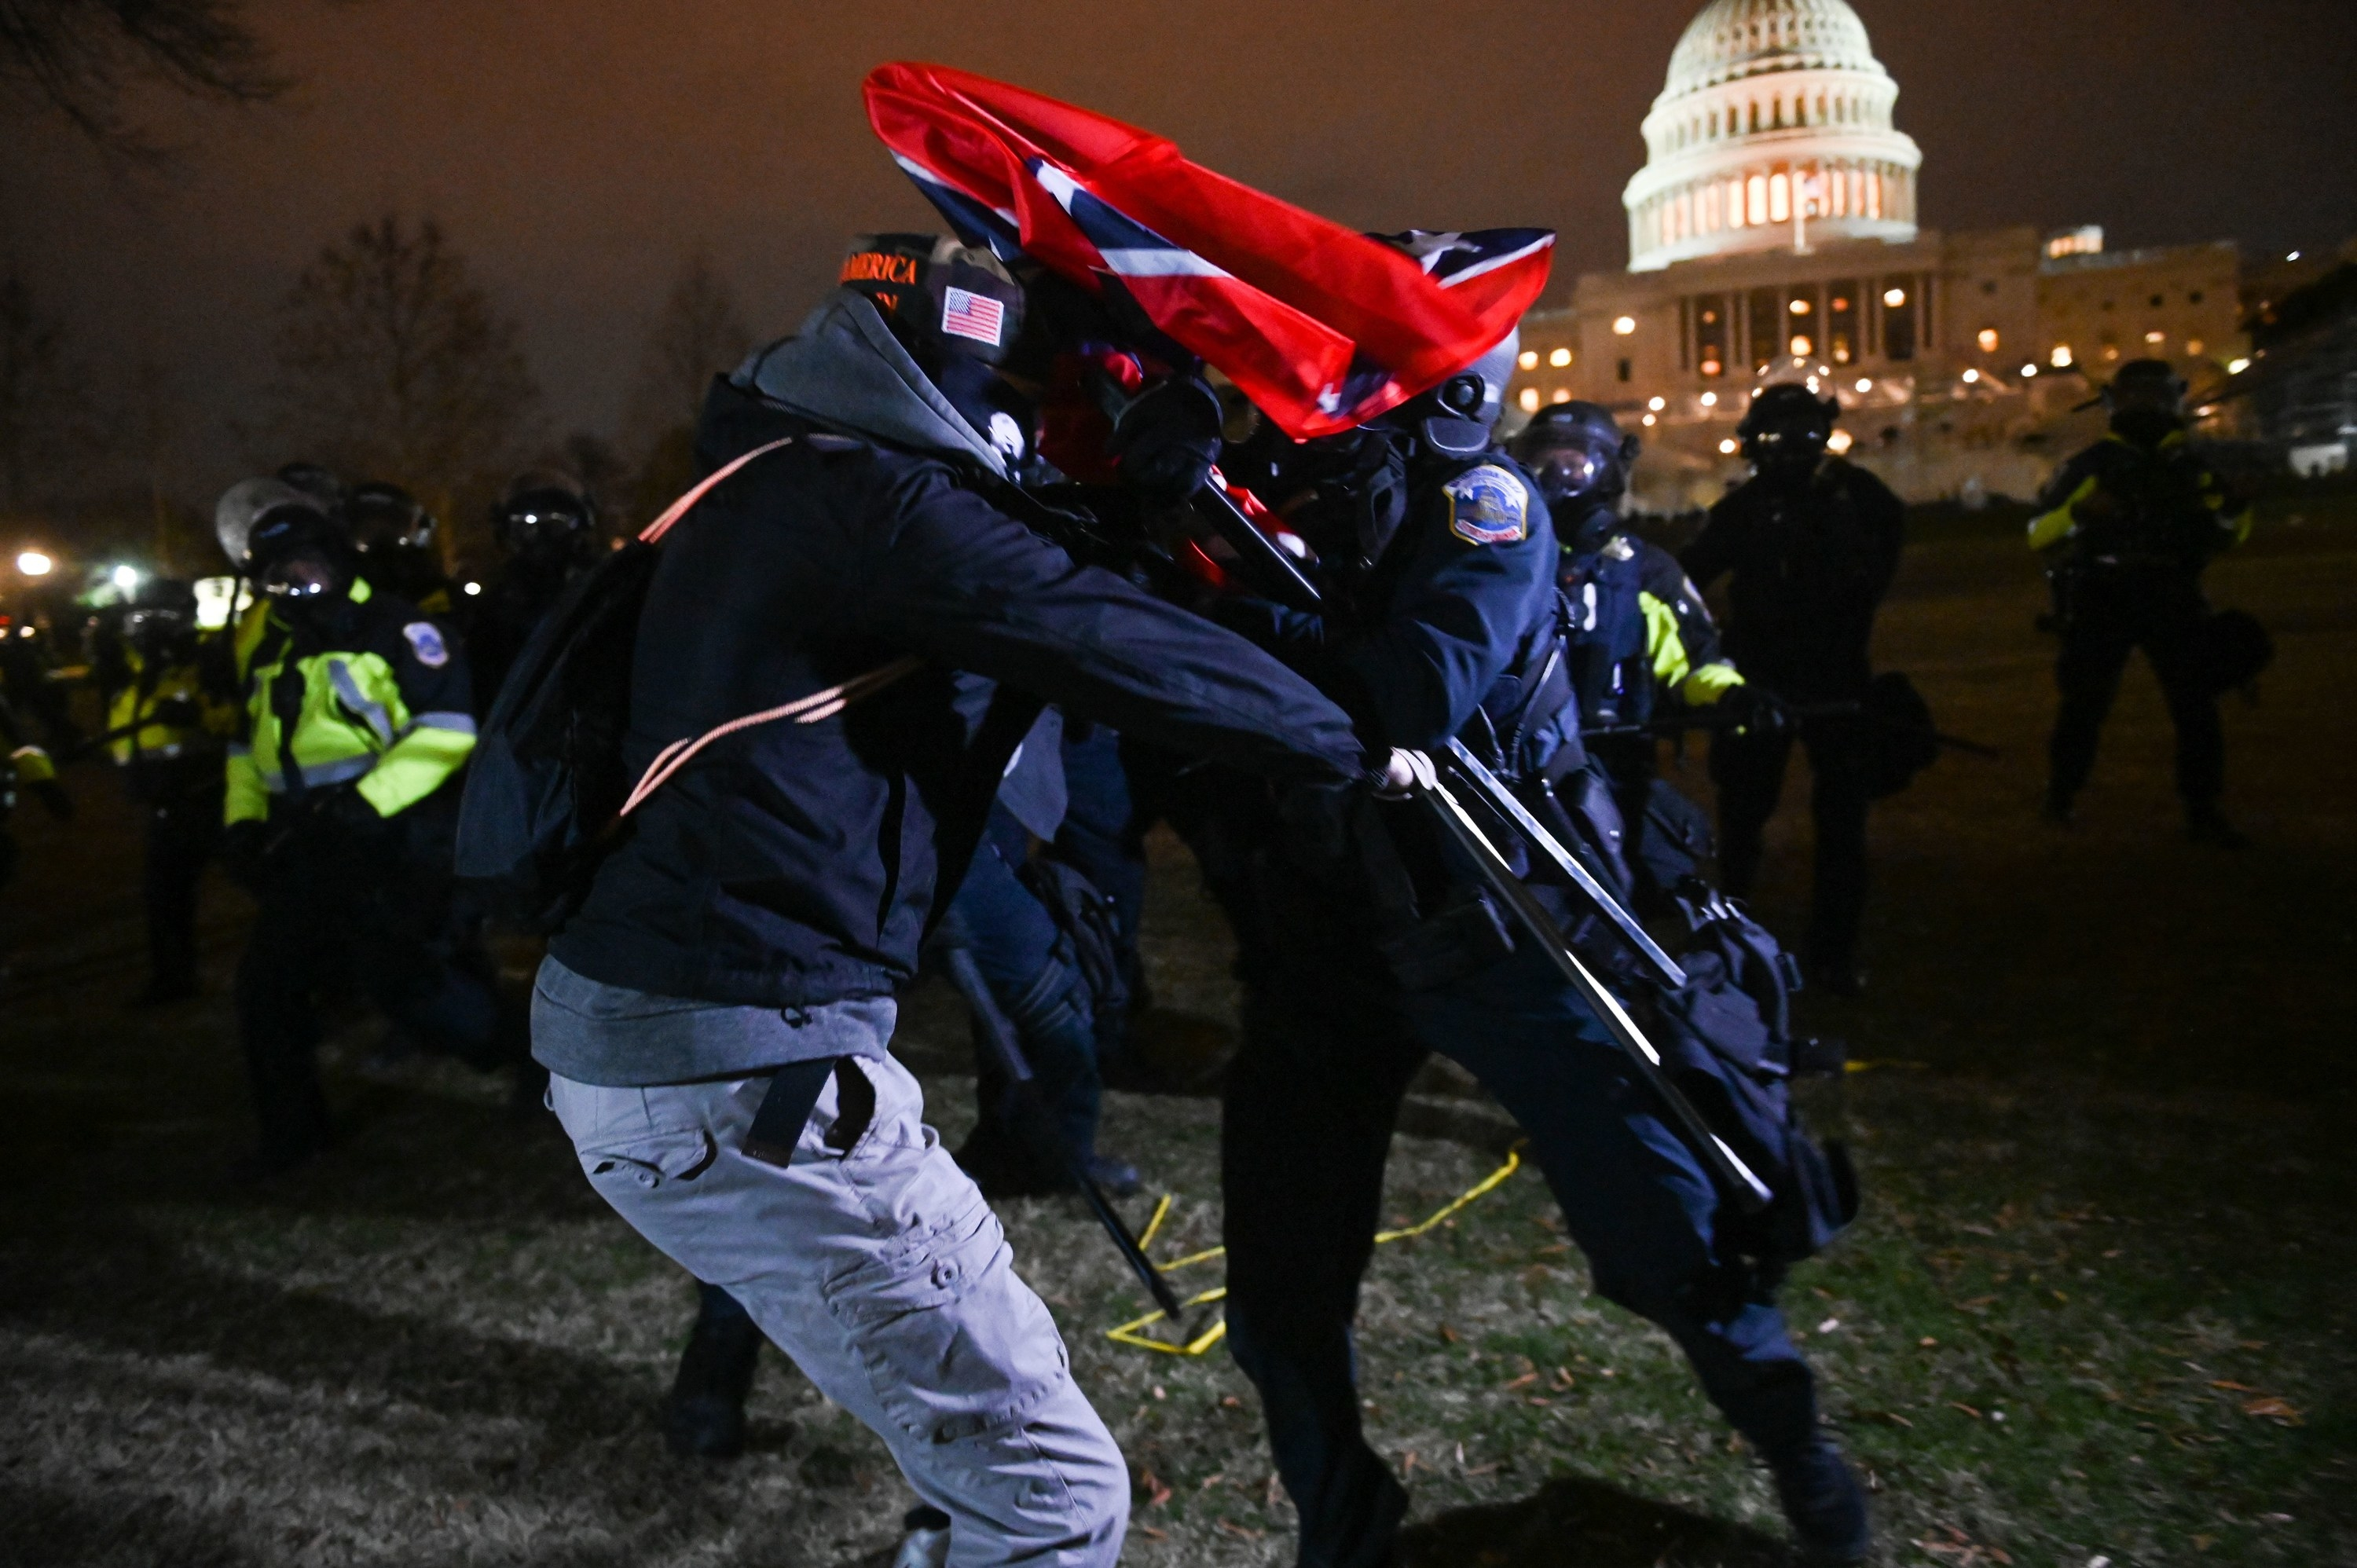 Rioter struggling with police